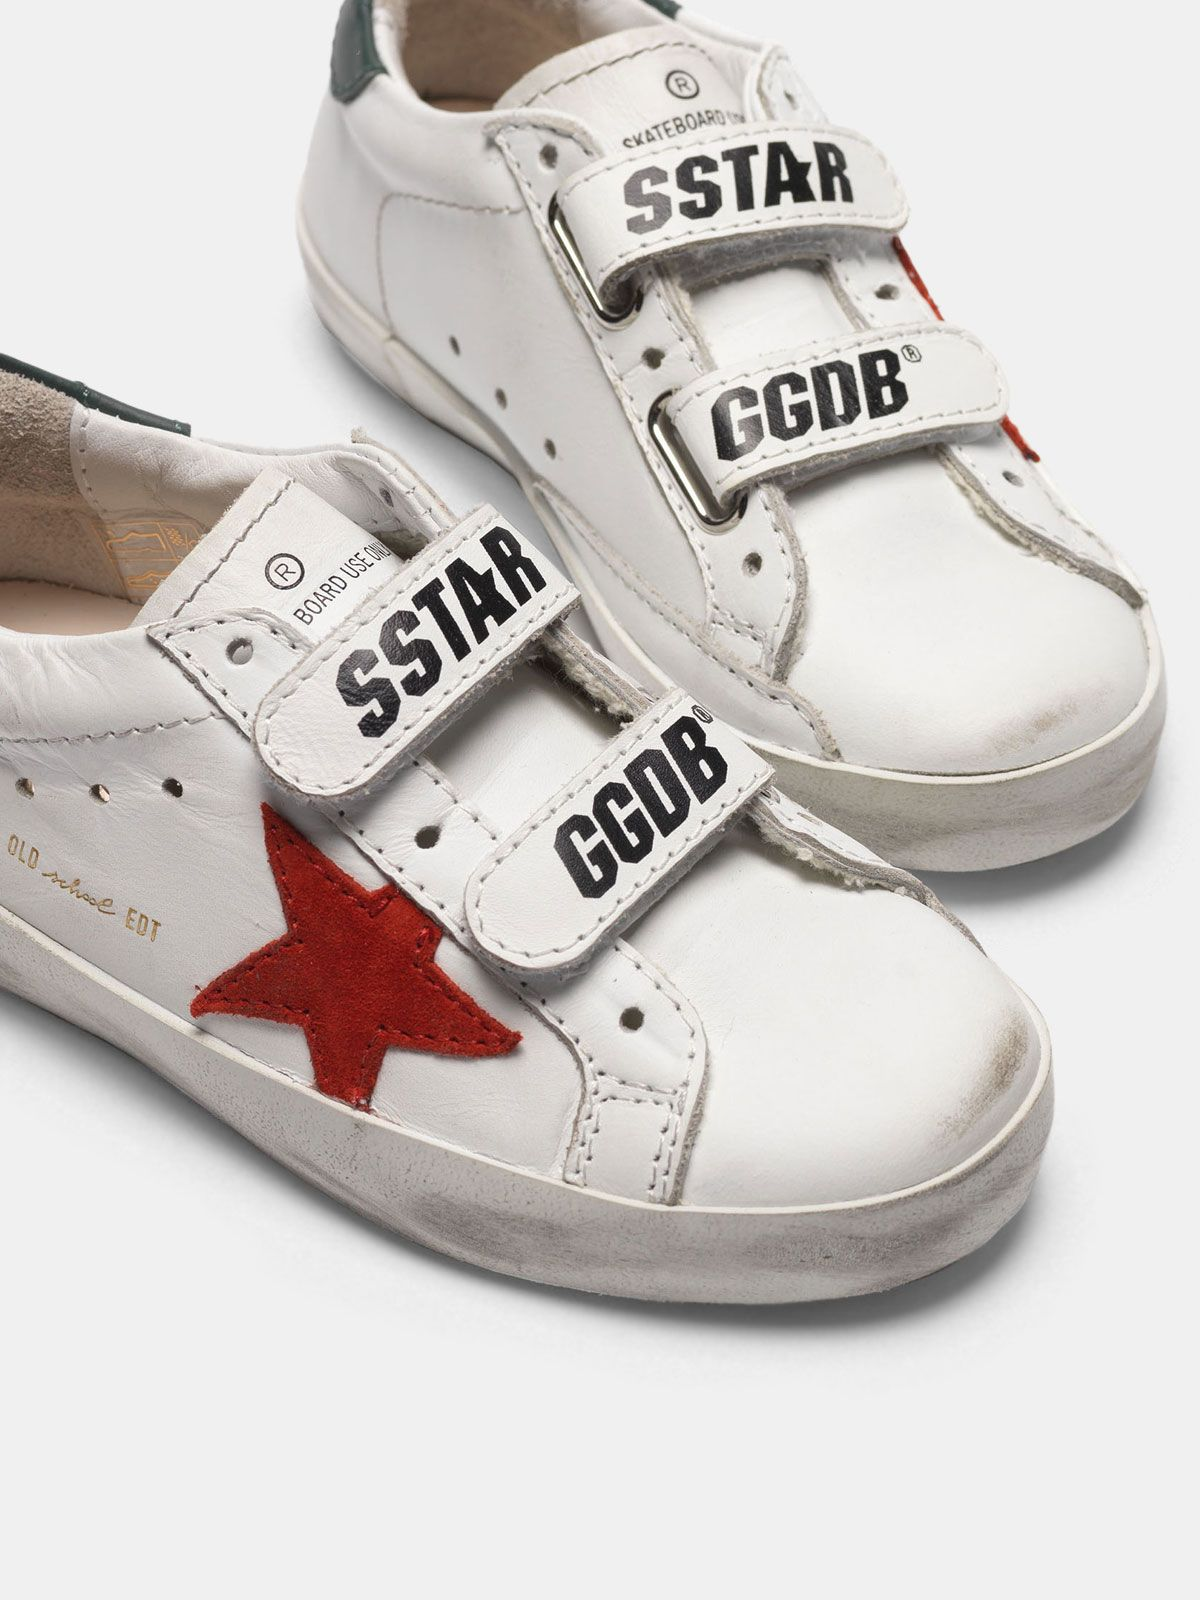 Golden Goose - White Old School sneakers with red star and green heel tab in